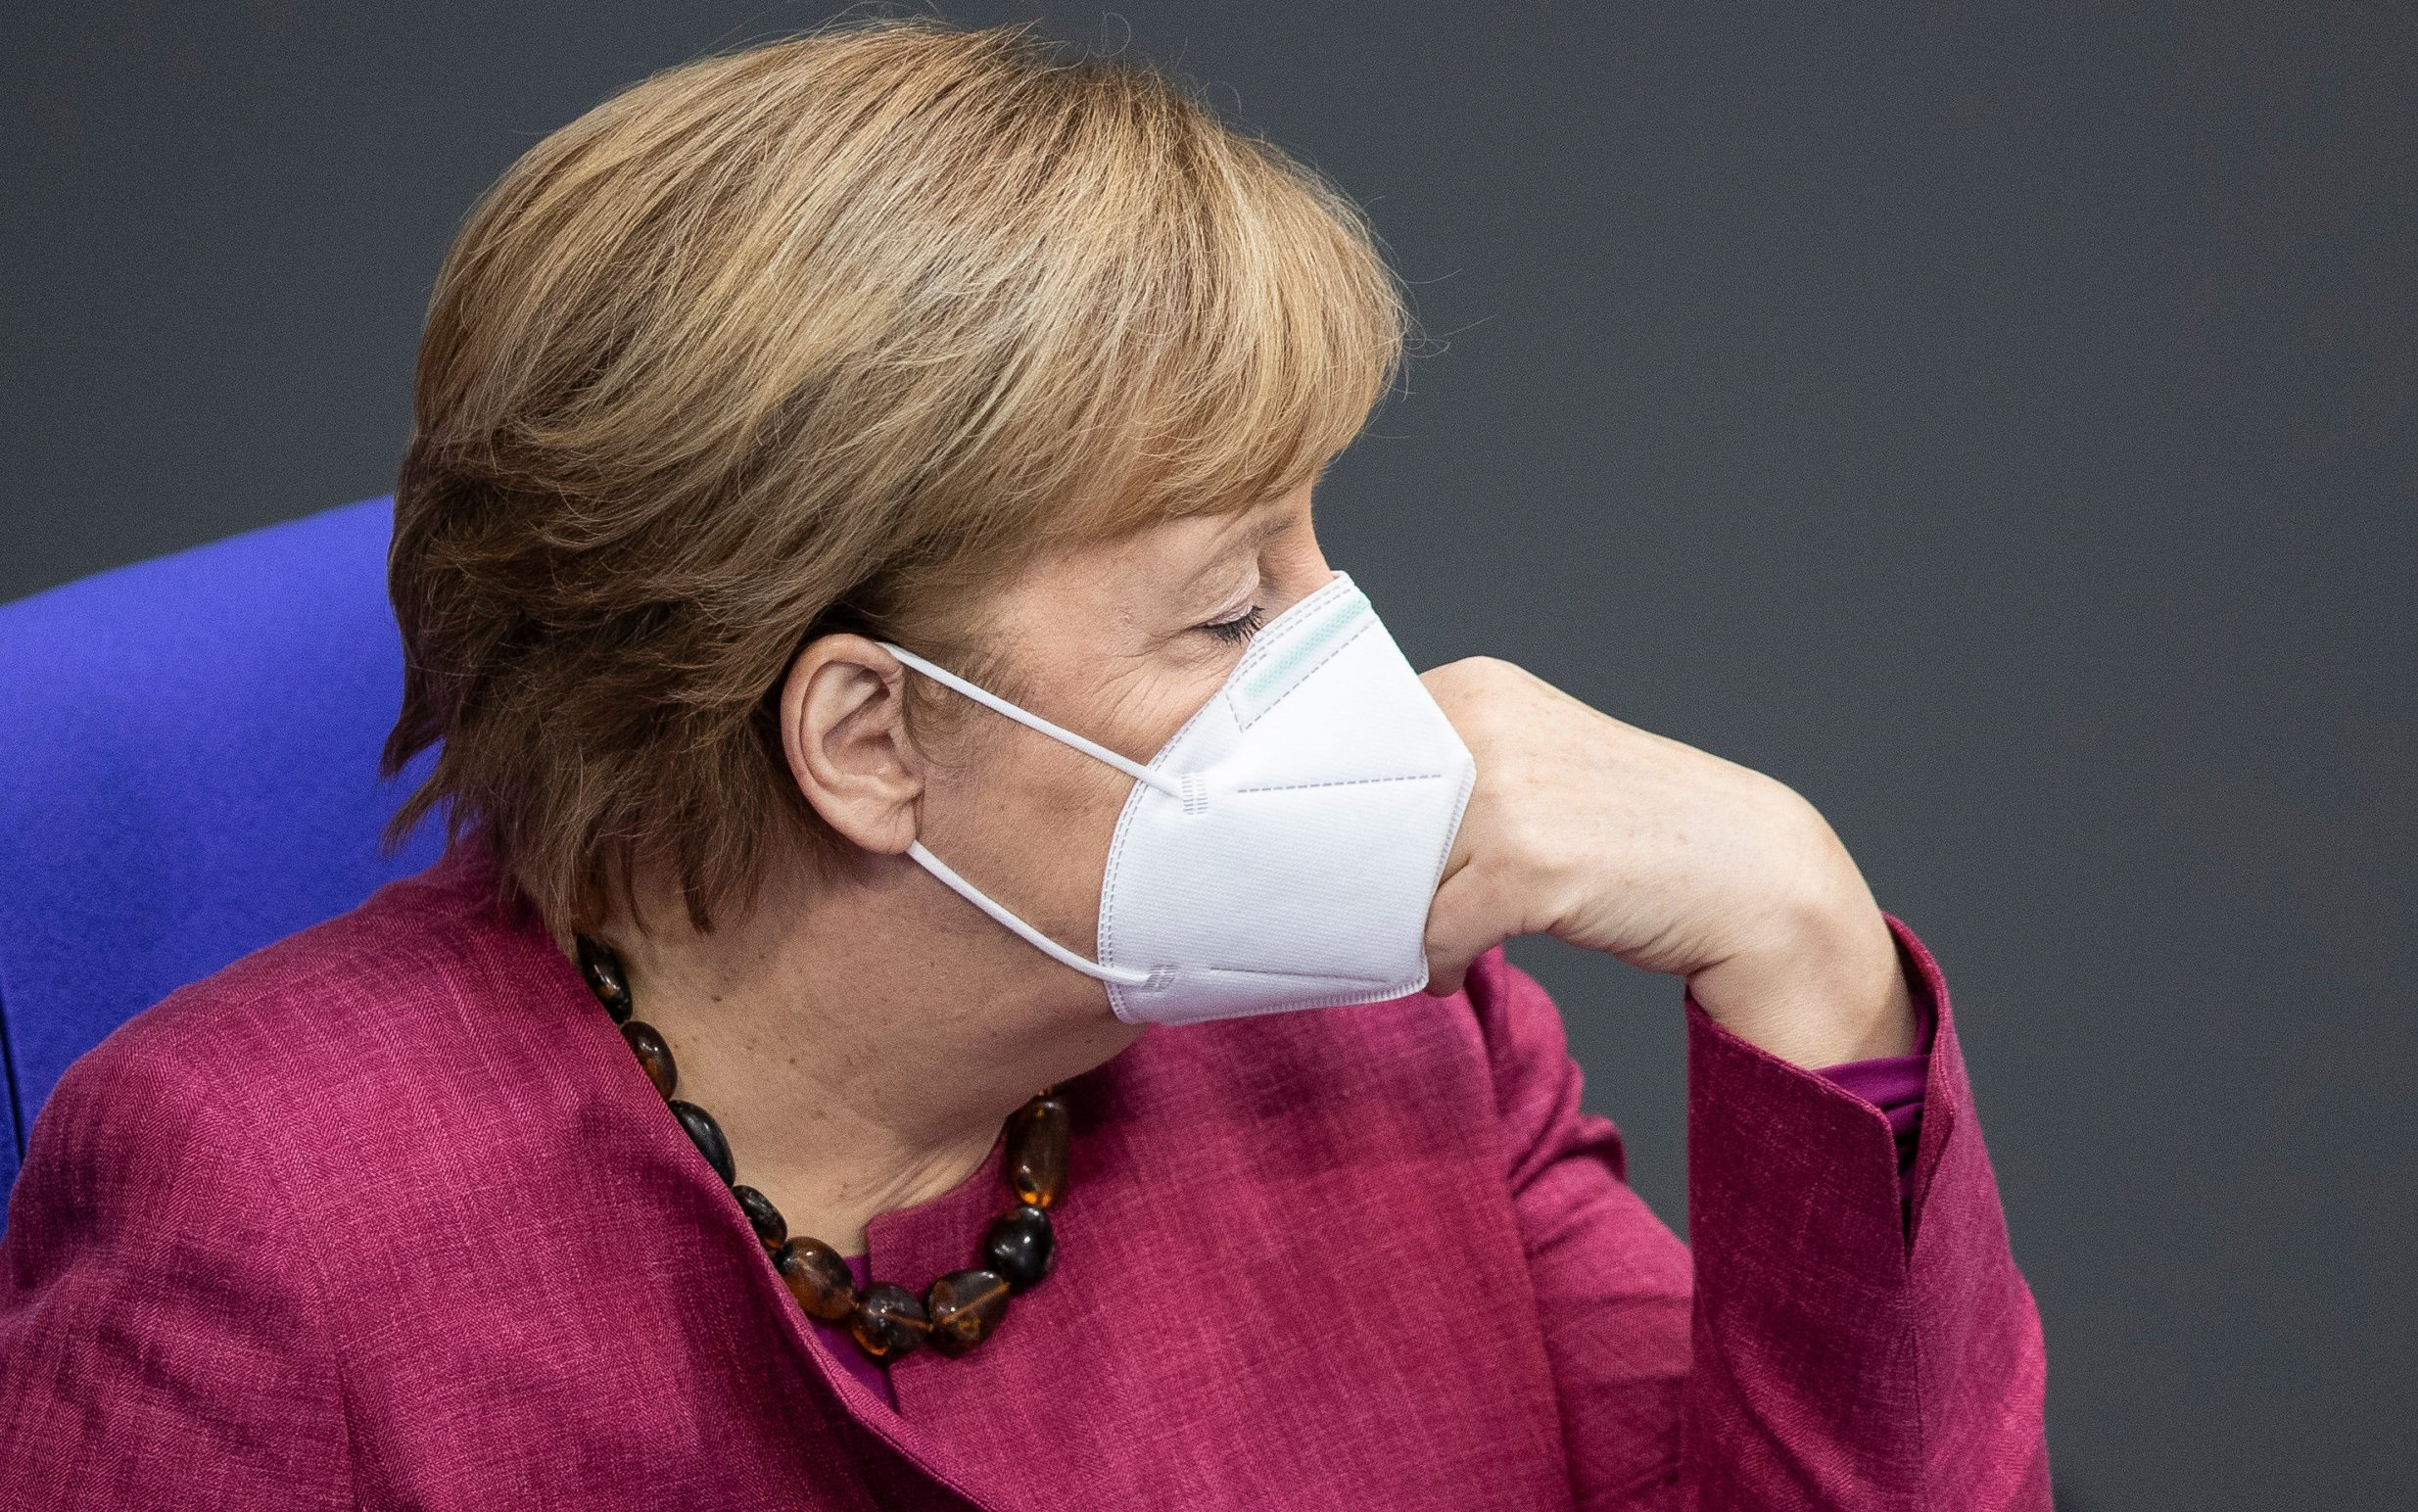 Angela Merkel heckled in German parliament after warning against Covid lies and disinformation